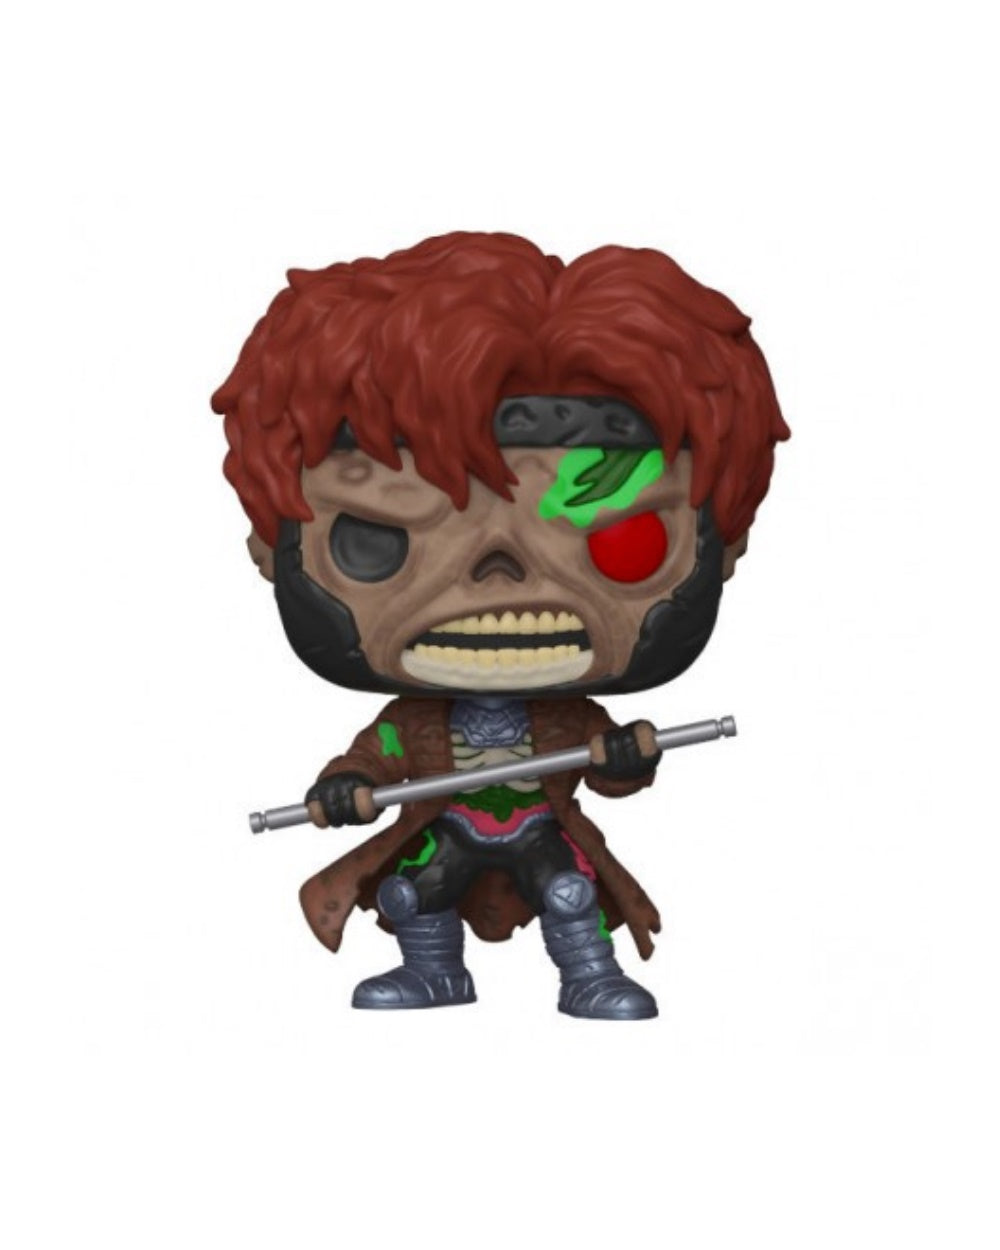 Funko POP - Marvel Zombies Zombie Gambit #788 - The Pink a la Mode - Funko - The Pink a la Mode